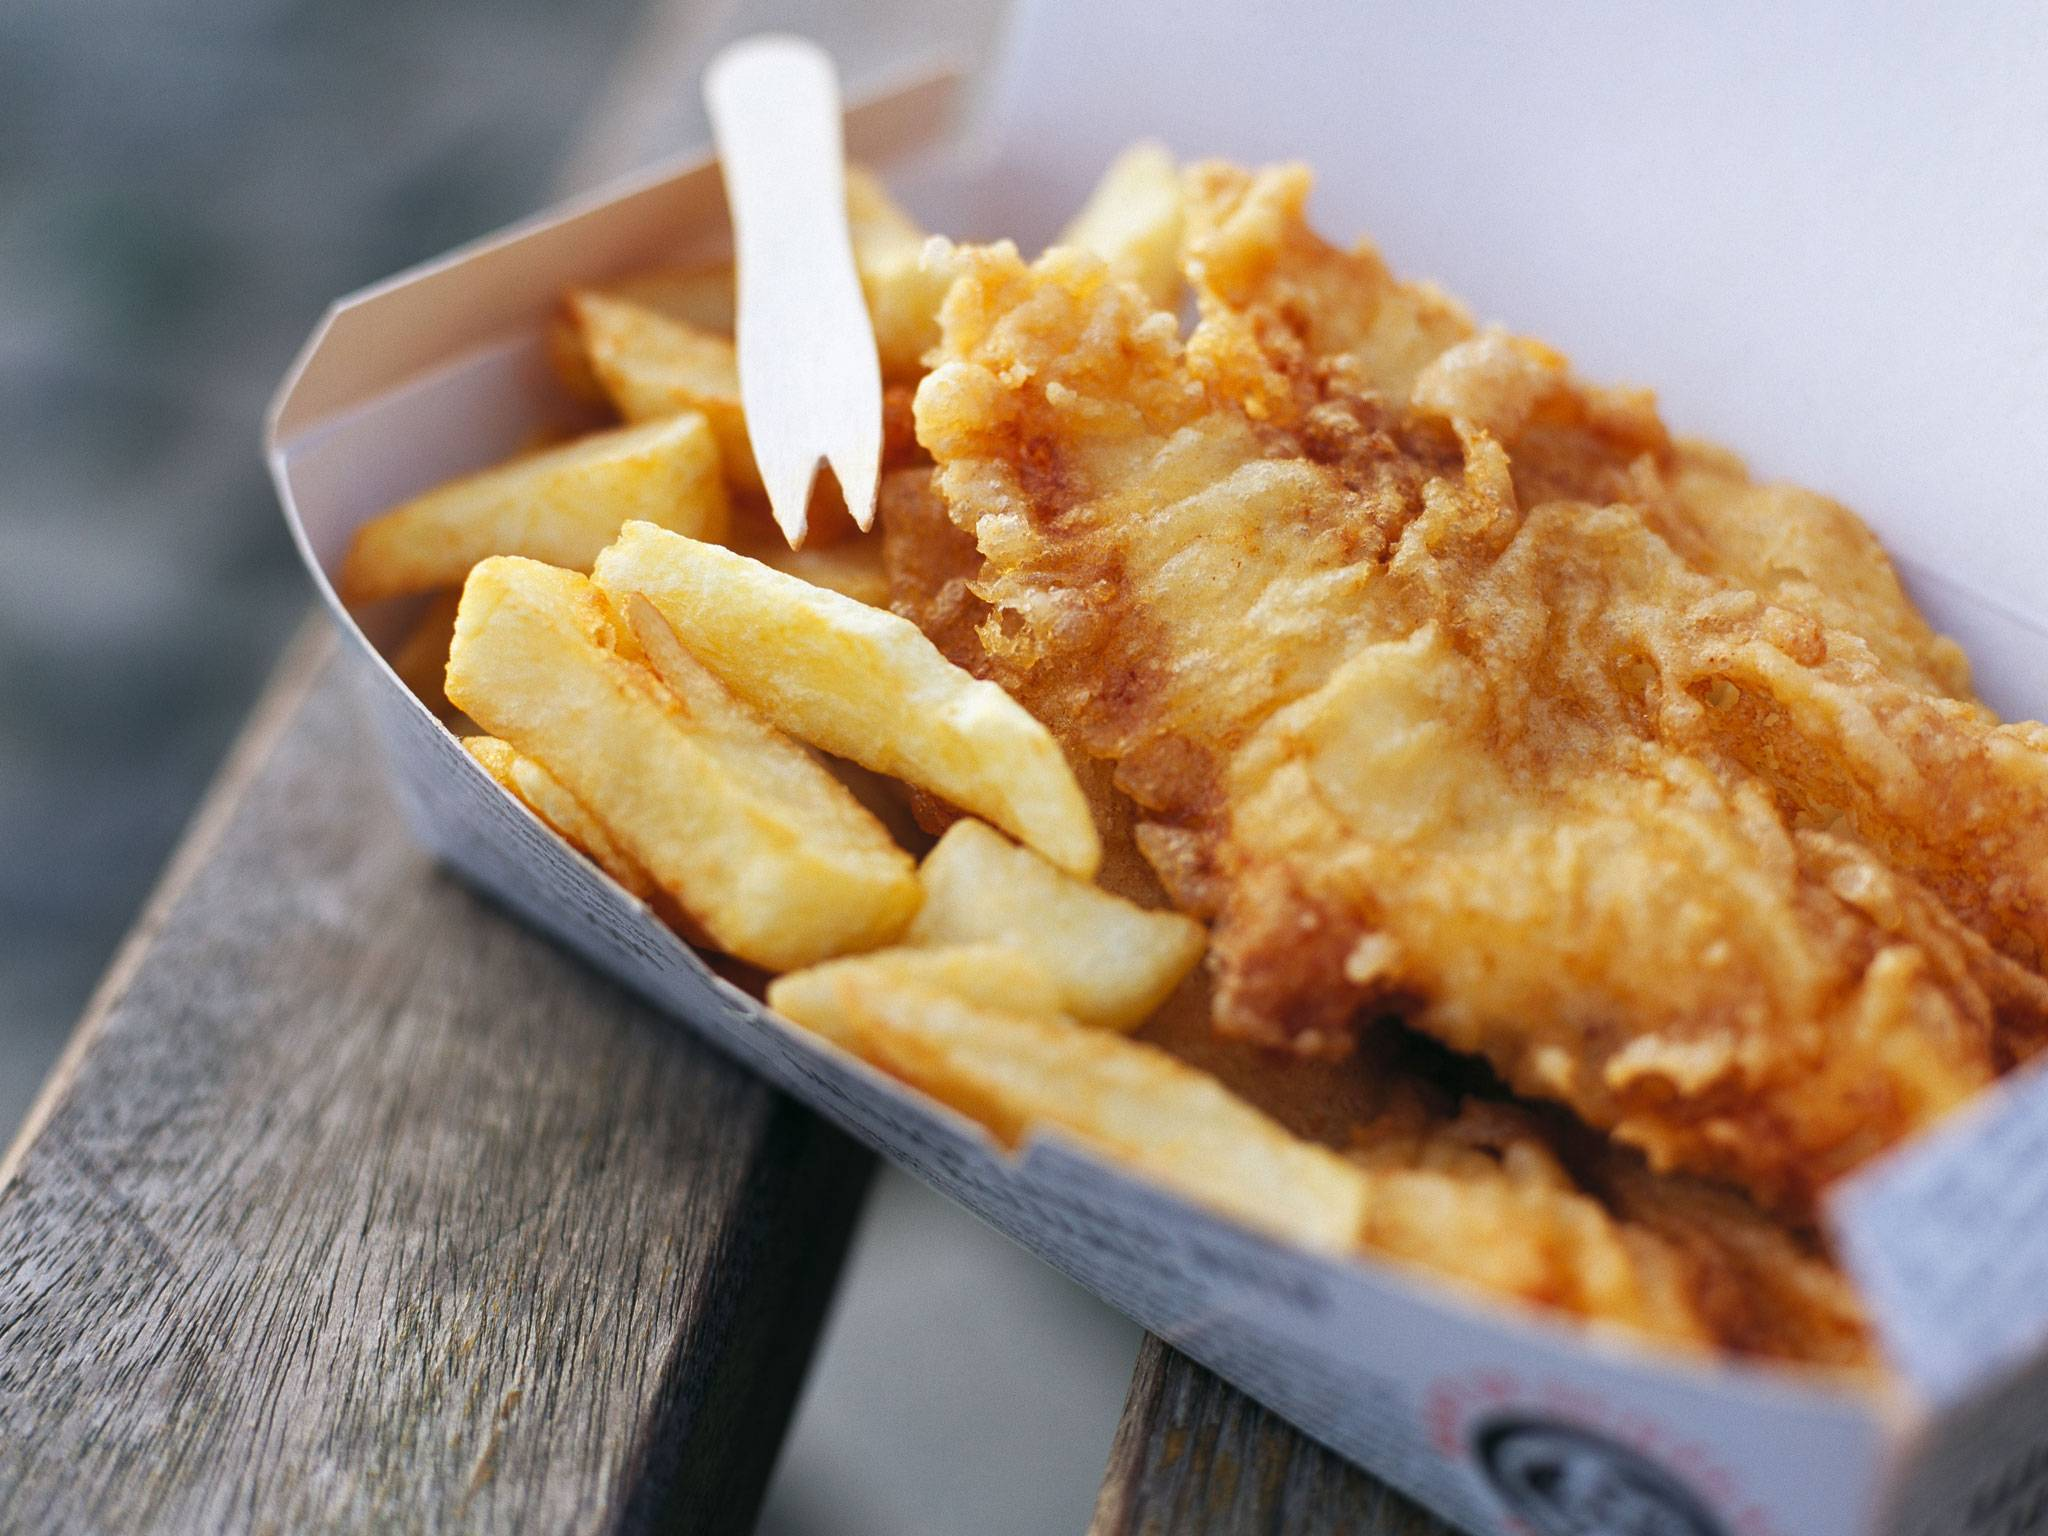 Best fish and chip shops in the uk kate tom 39 s for Where can i get fish and chips near me